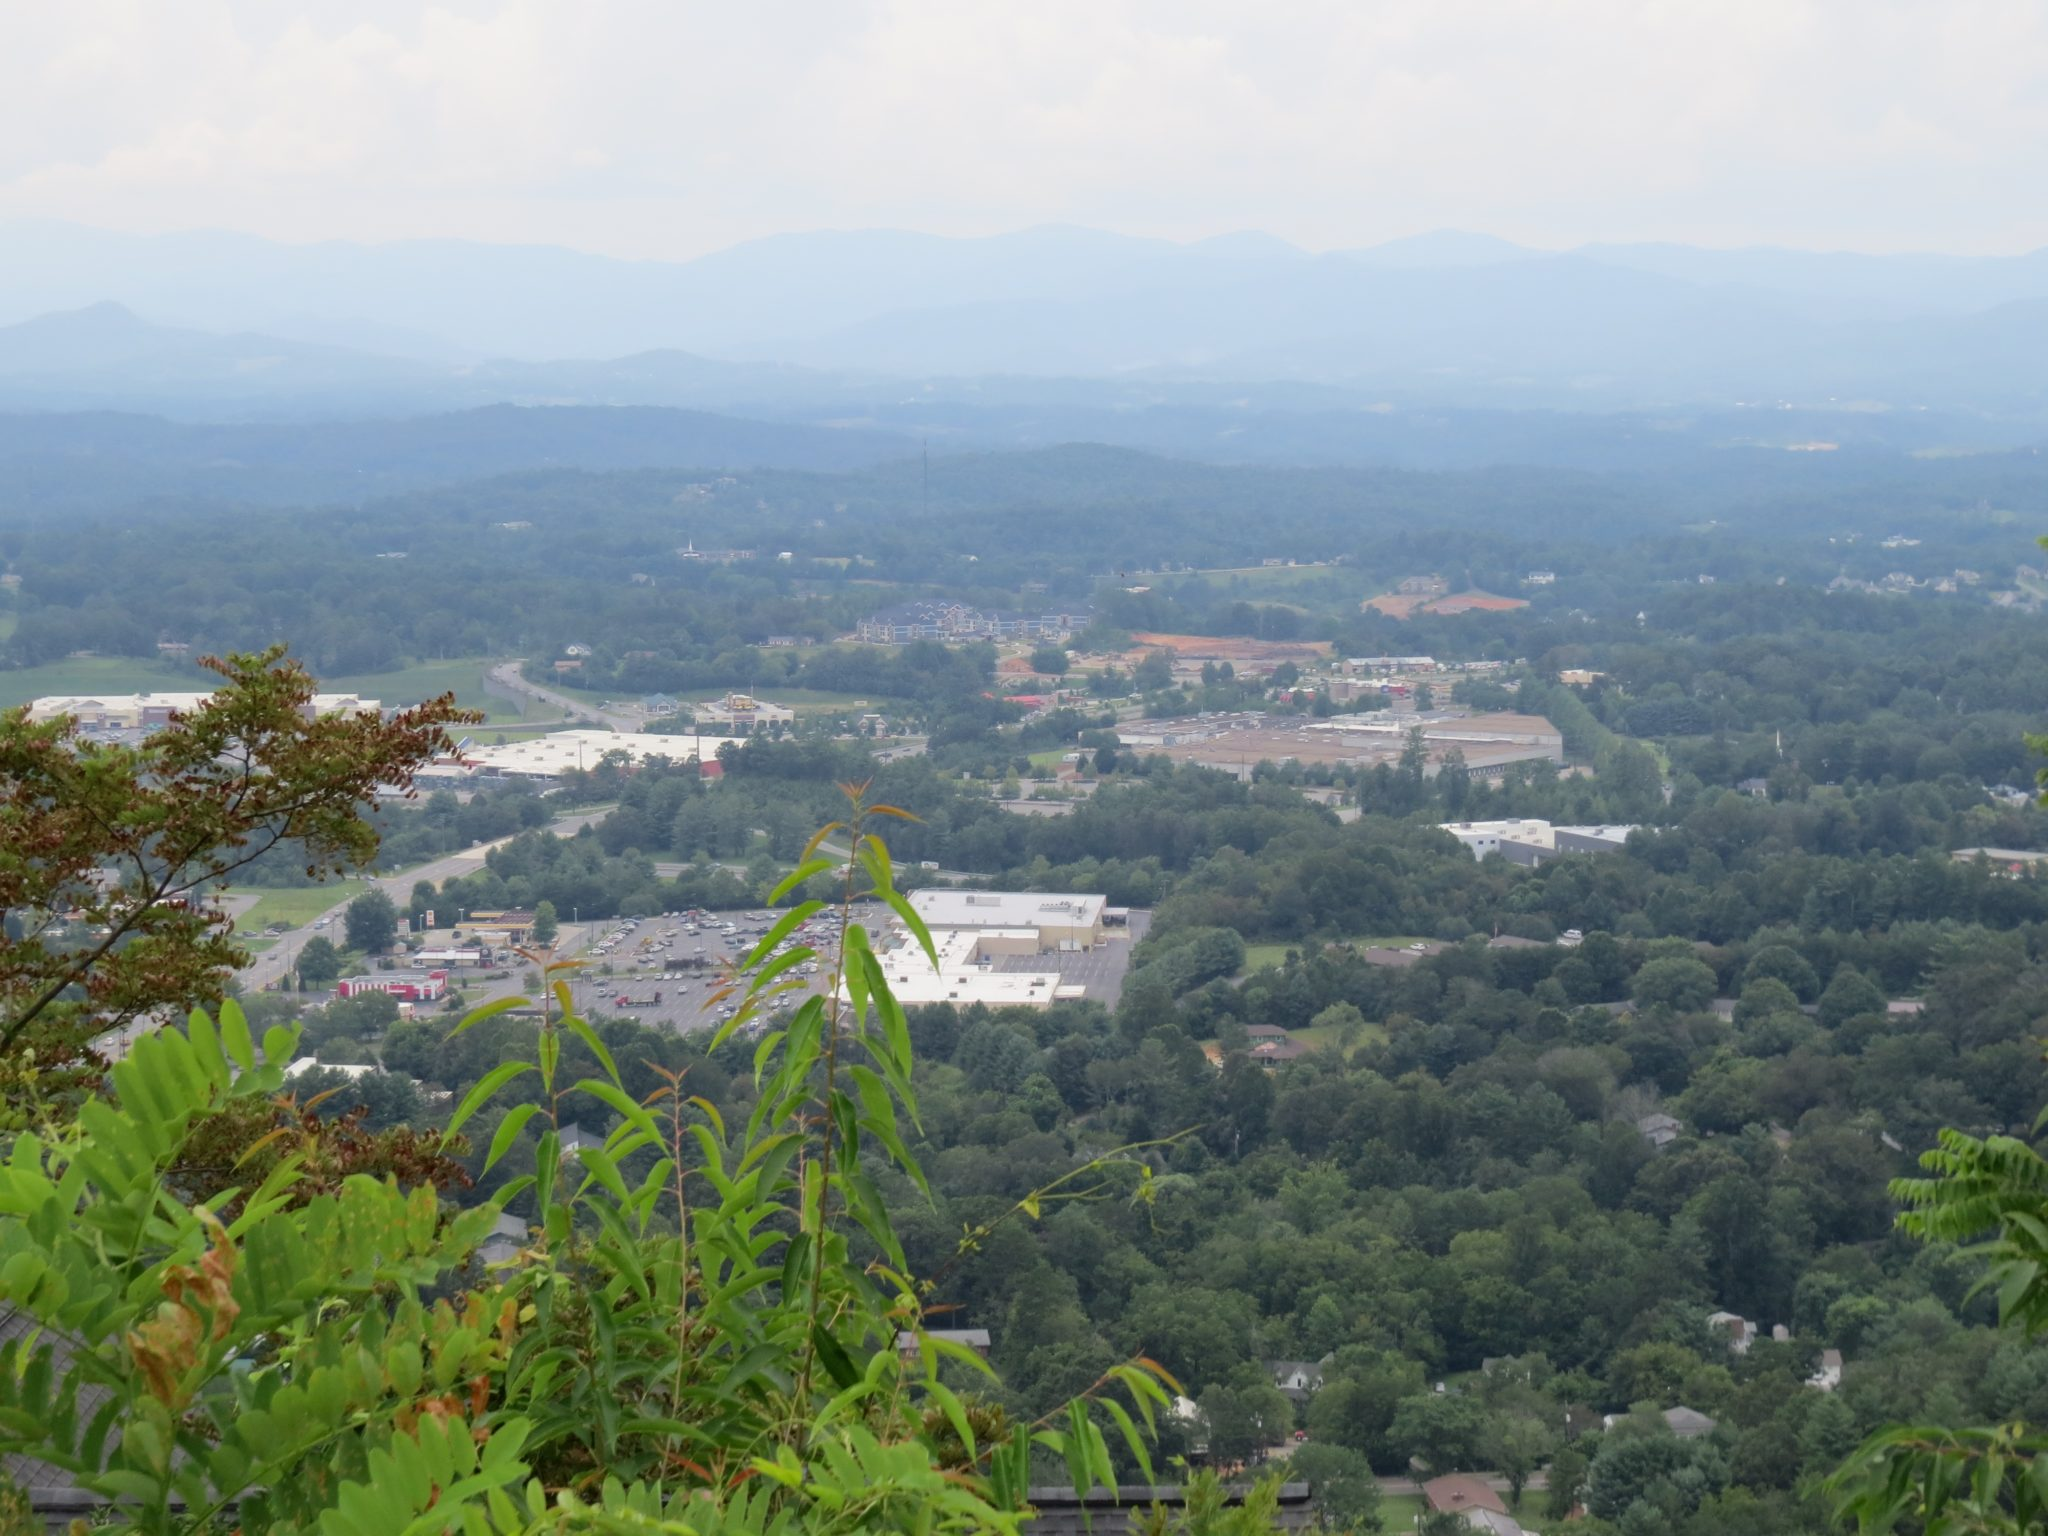 Town Of Weaverville NC Top Hamburg Mtn